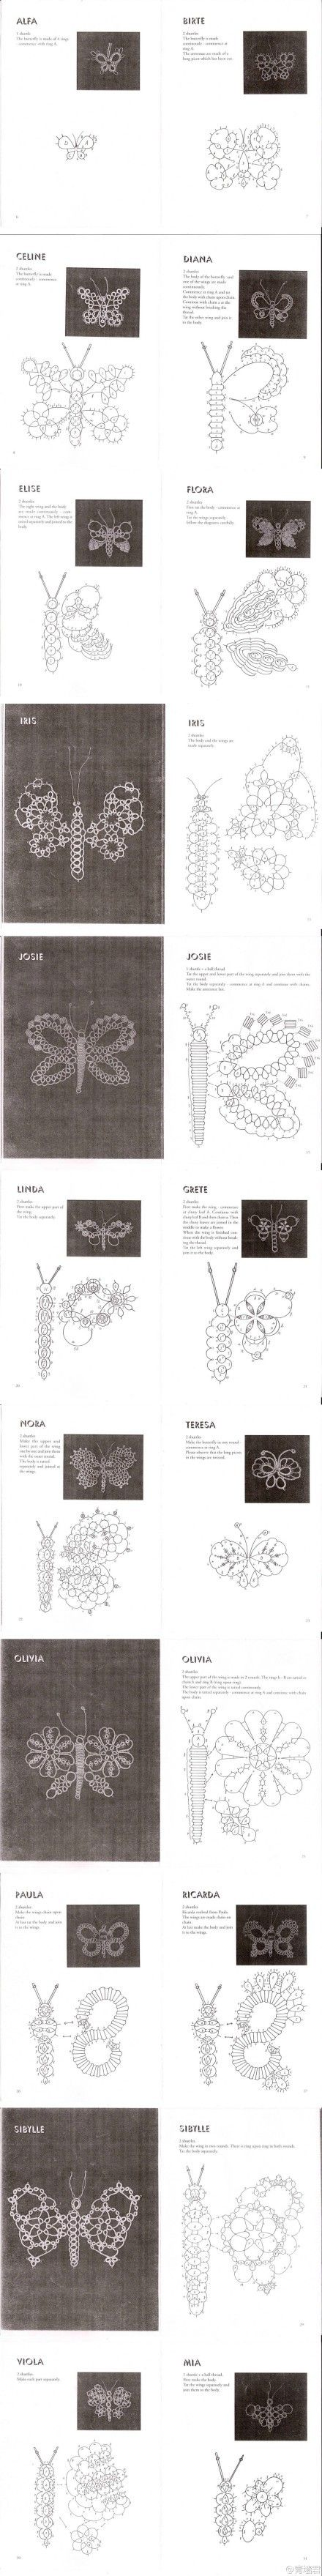 """Butterflies with tatting patterns and diagrams ... """" oops,  lots of pretty tatting diagrams of butterflies."""""""